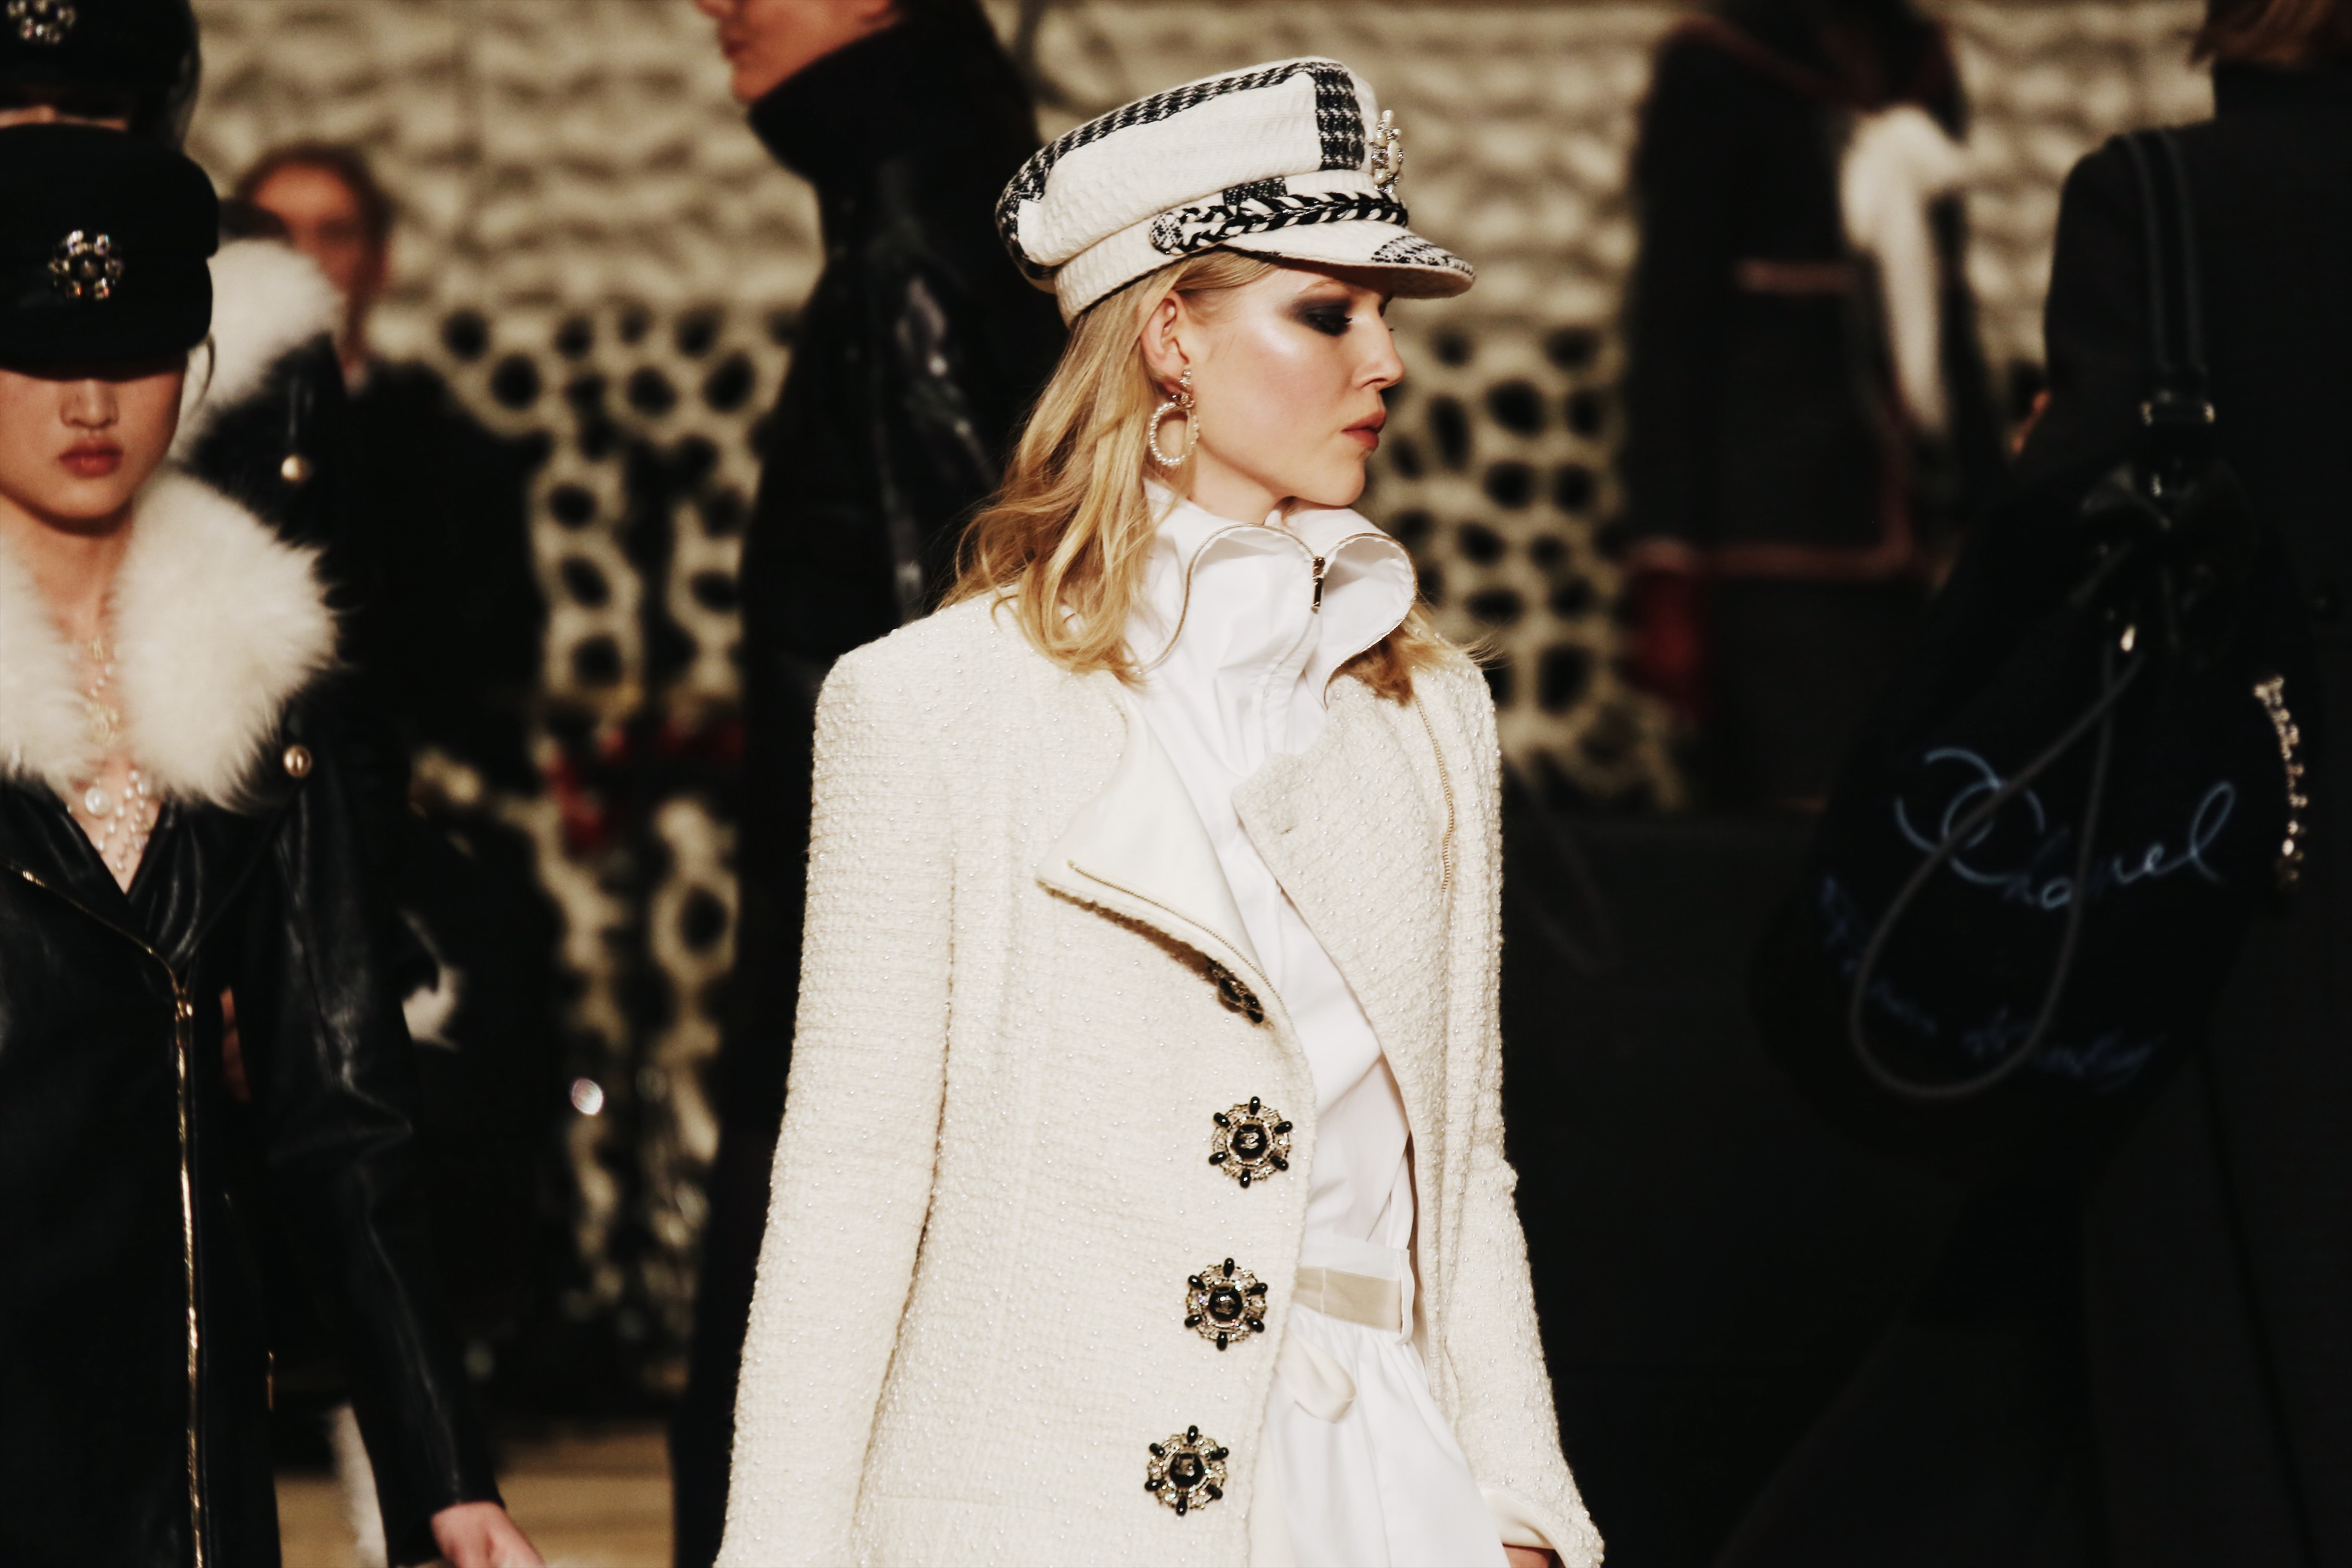 CHANEL MÉTIERS D'ART HAMBURG